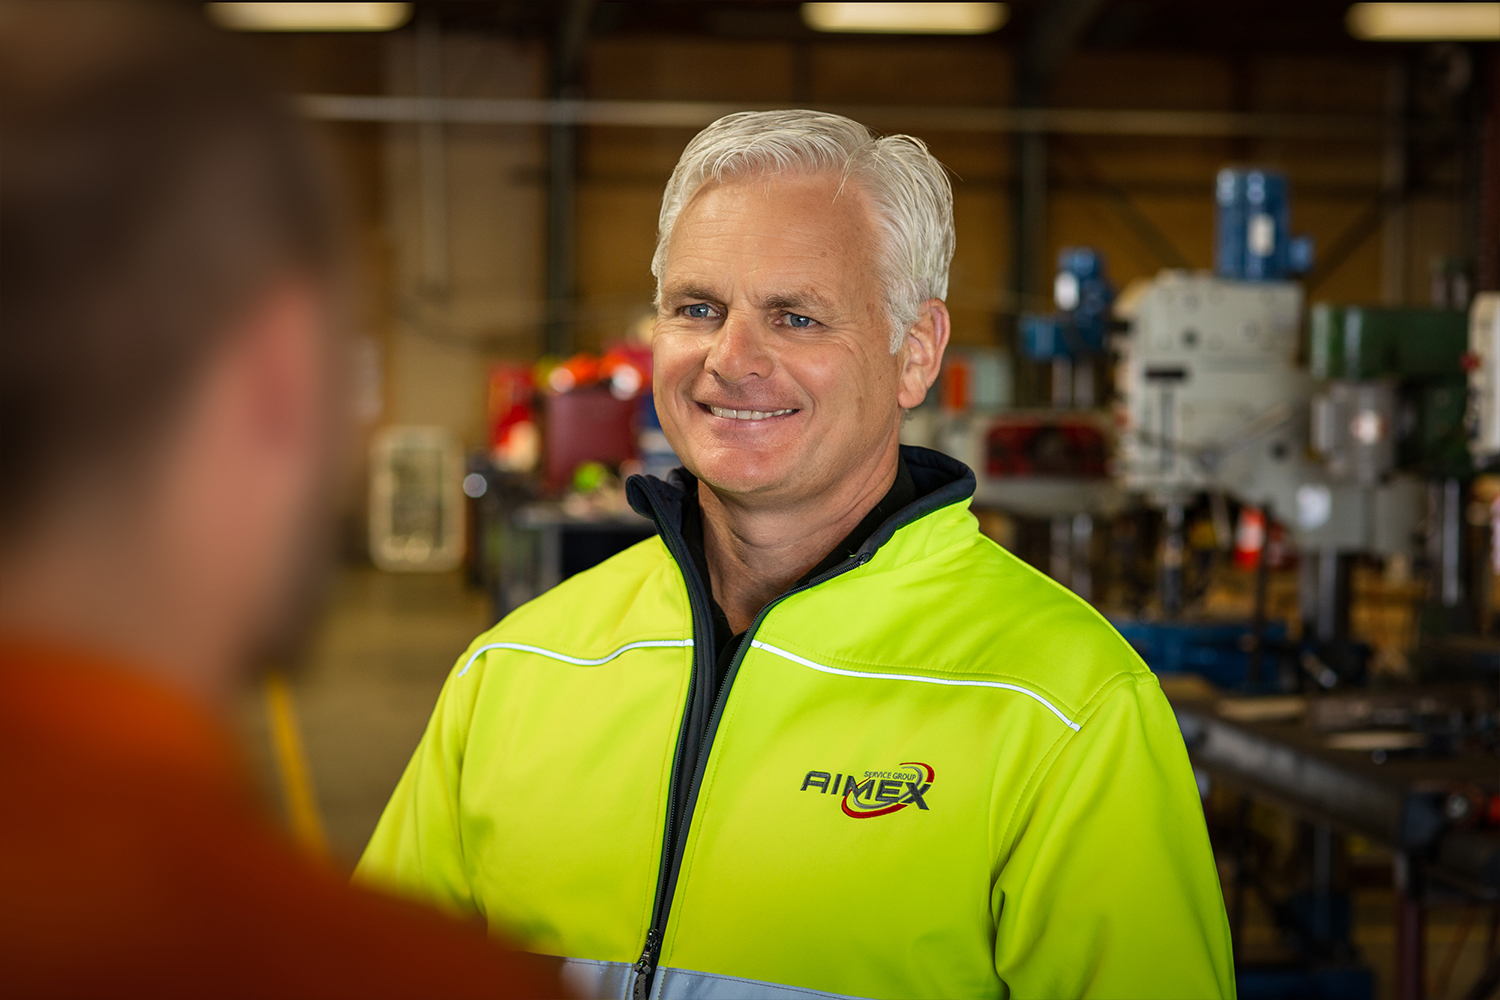 craig booteowner / director - Craig brings a wide range of business and technical skills to the Aimex table as an active Director in the company. Being the Chief Executive and co-owner of Westfleet Fishing, having started it from scratch as a teenager working on fishing boats, Craig is no minnow in the world of commercial fishing and marine engineering.Holding the rights to 5000 tonnes of quota and six well equipped Vessels, Westfleets recently opened a new $10m processing factory in Greymouth being the last part of the puzzle for the company in its preparations for expansion. With plans to buy and build more vessels, Craig's extensive knowledge and experience of the Marine Industry is a total asset to Aimex, and brings great strength to the strategic planning and vision for the future of the business.